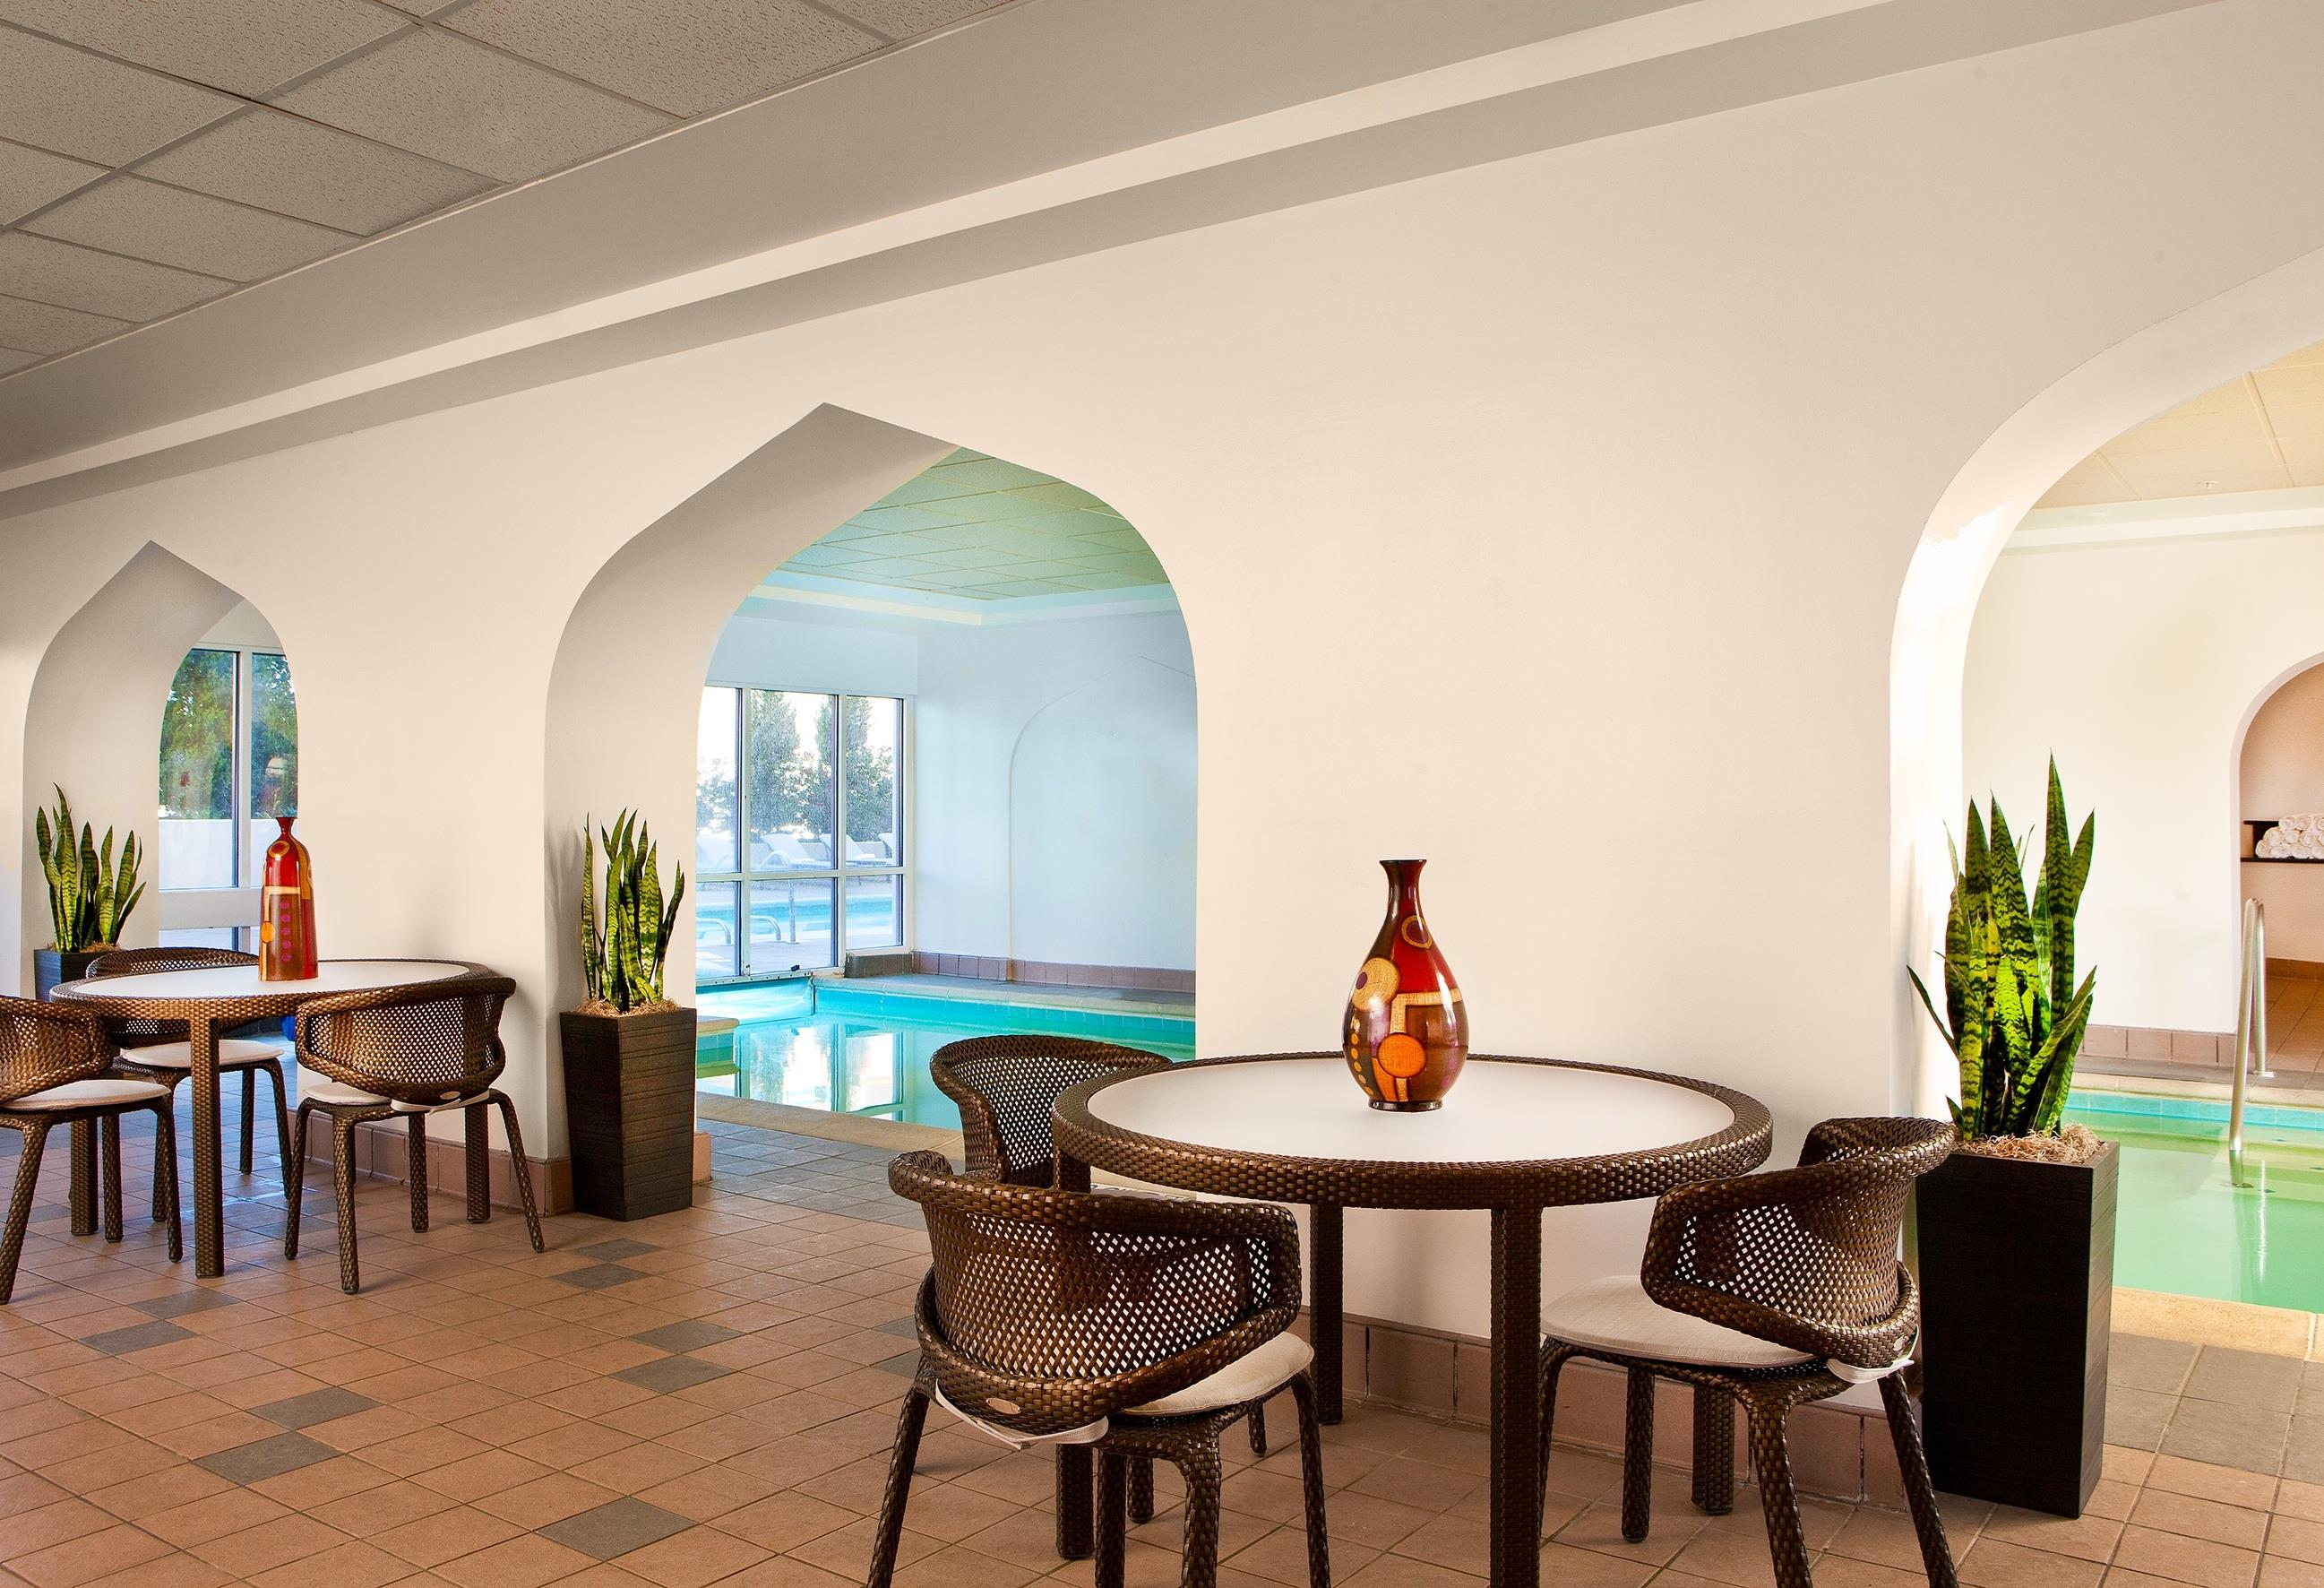 Sheraton Suites Country Club Plaza image 7